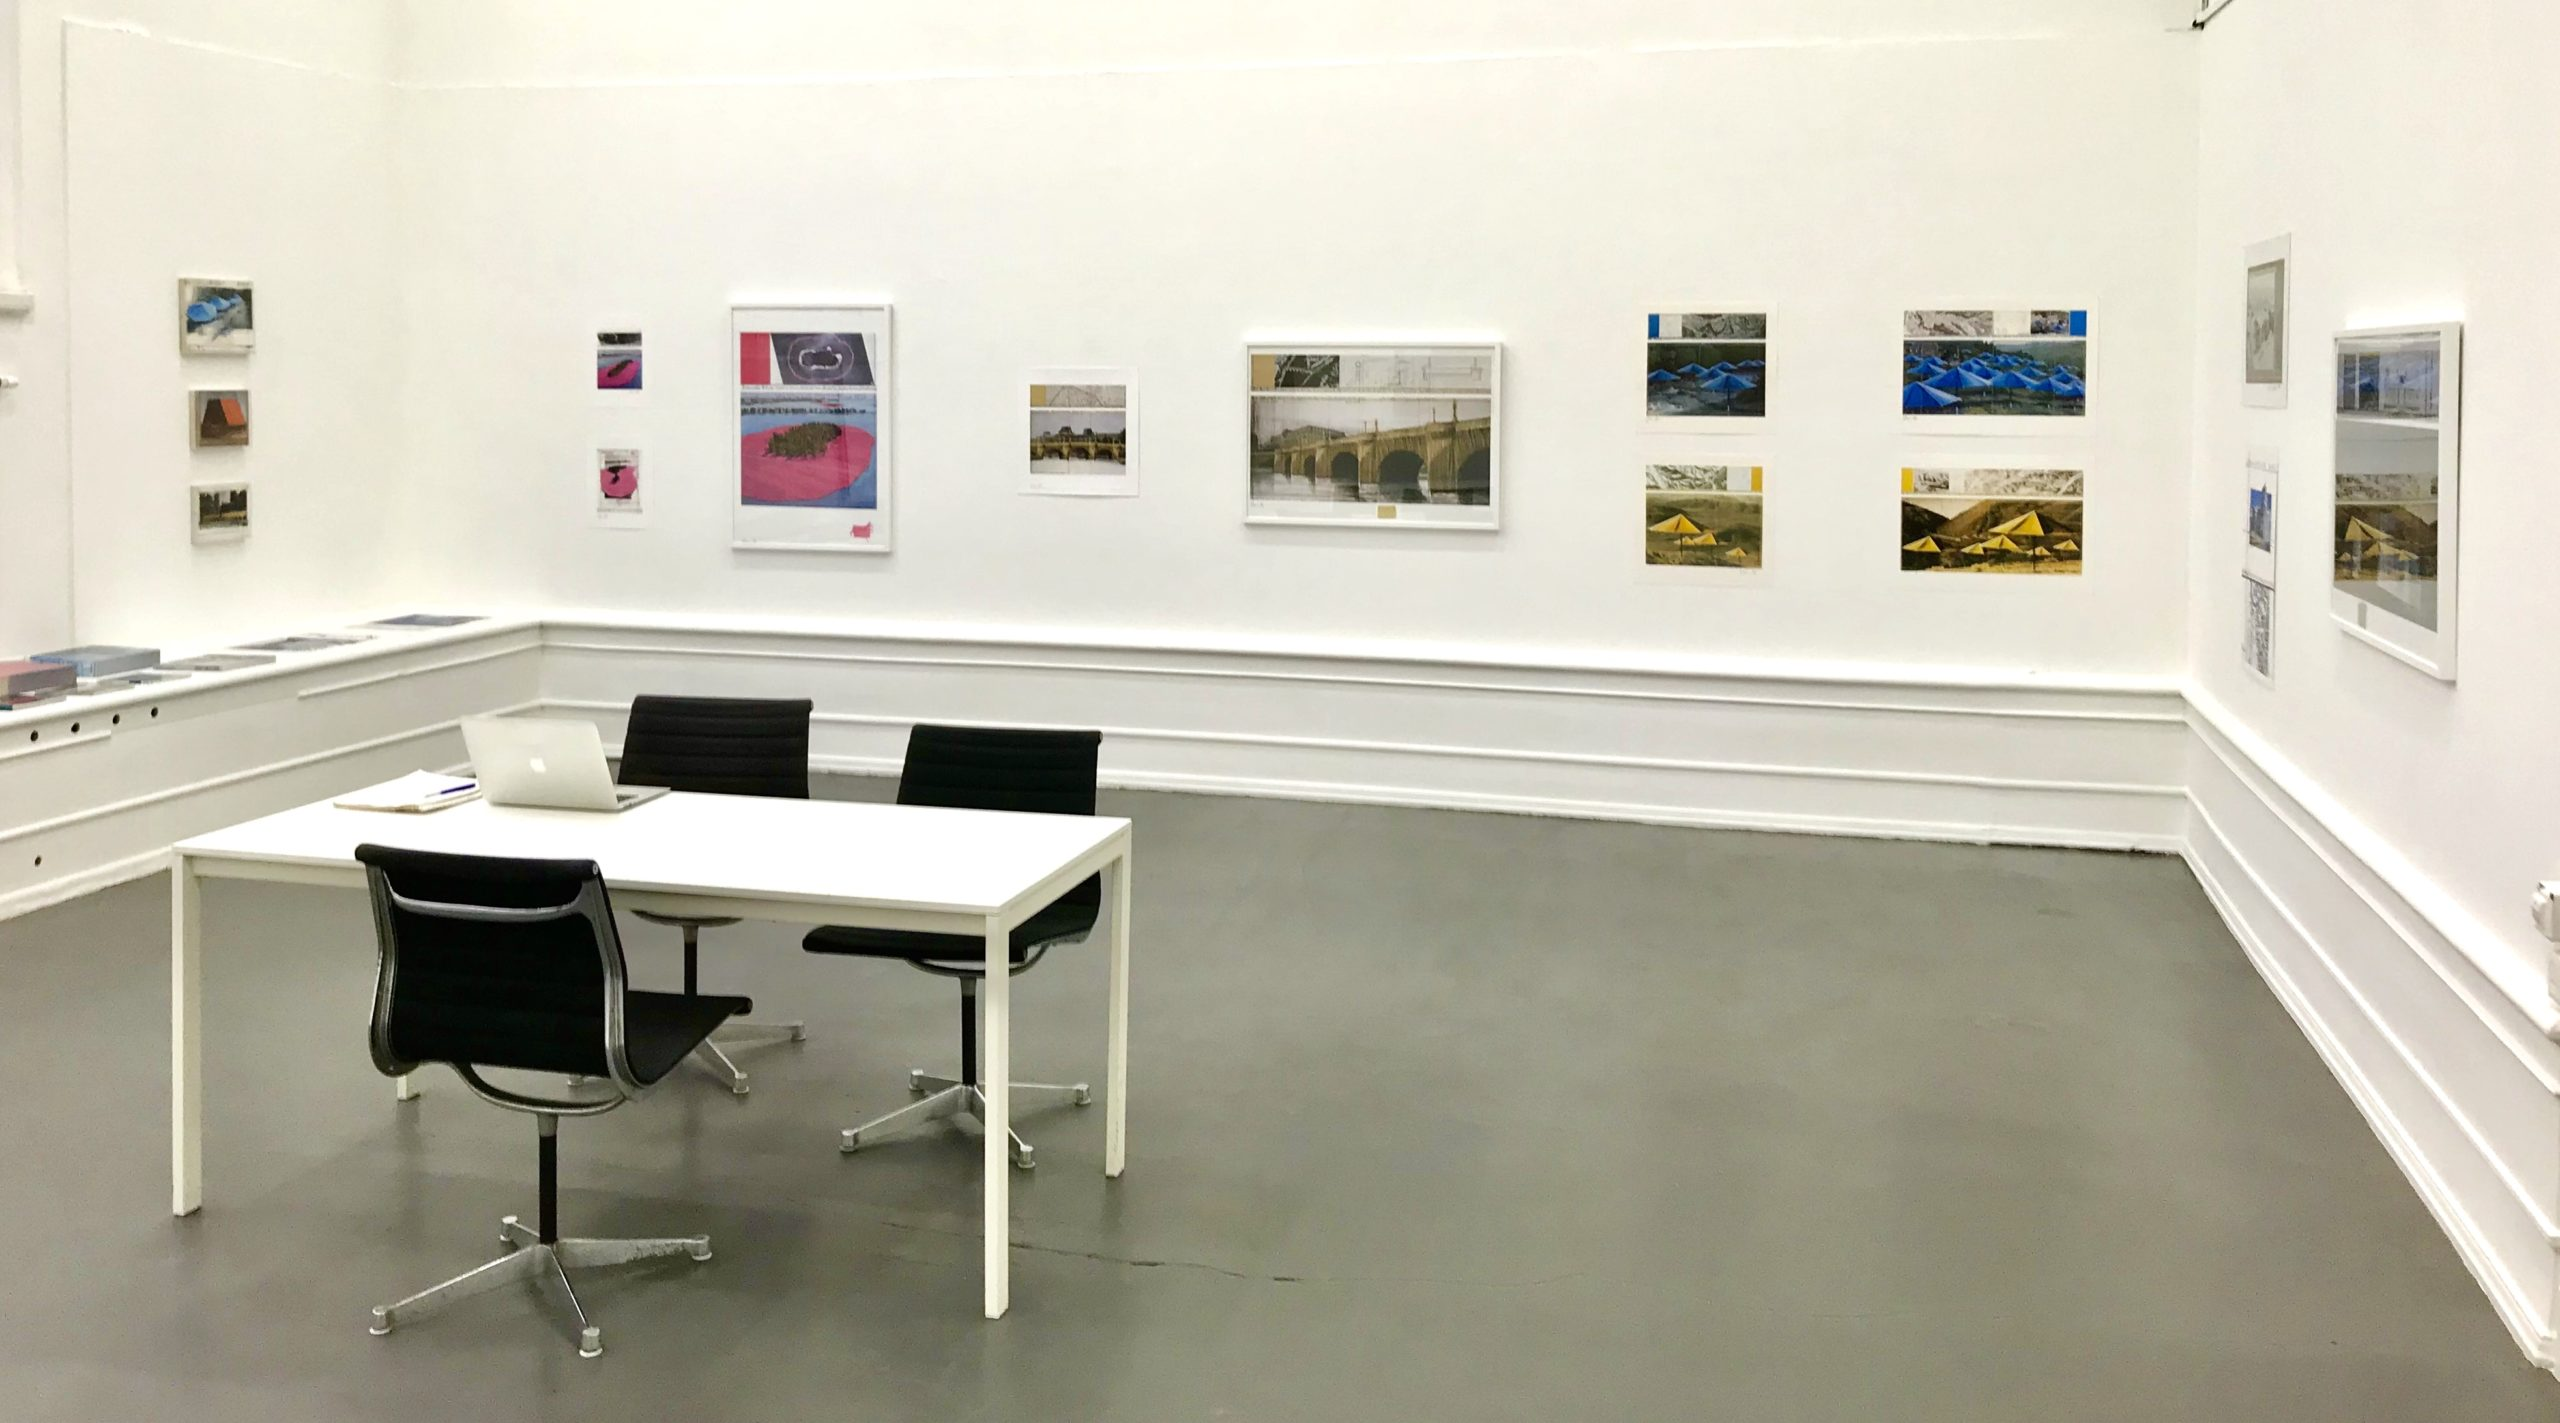 Christo & Jeanne Claude, Fne Art Prints of Realized Projects